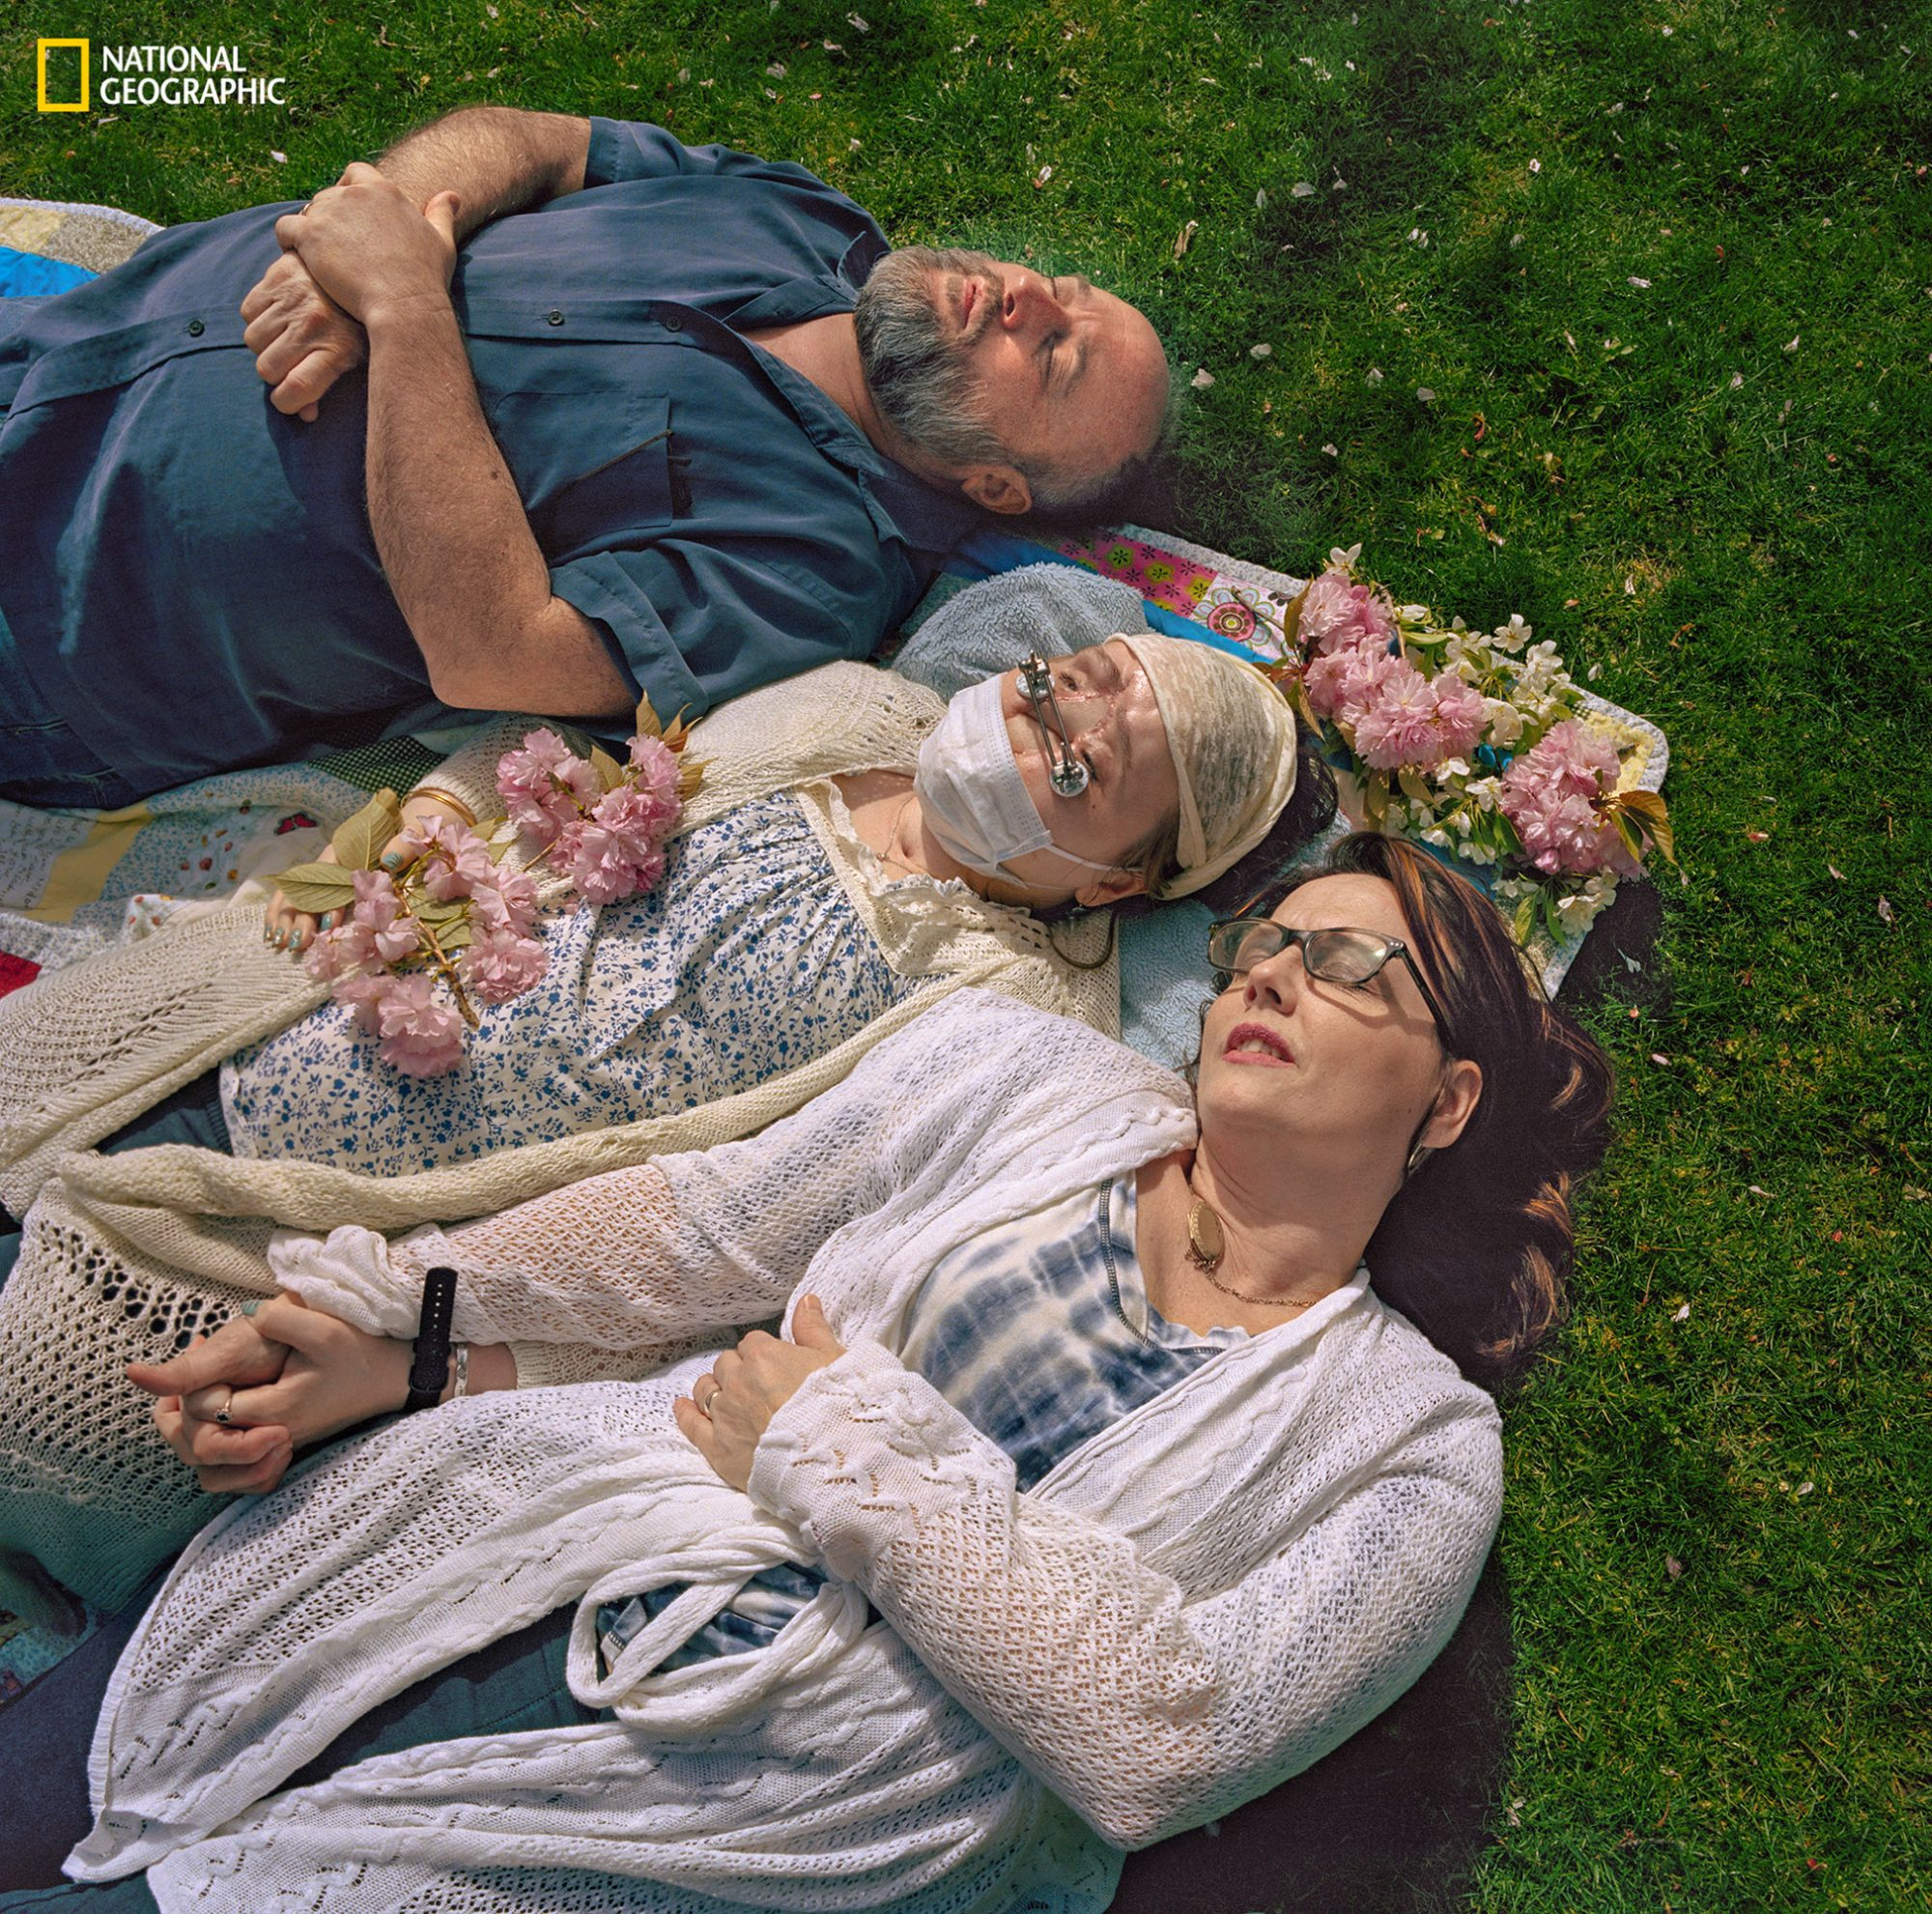 003Photograph by Maggie Steber/National Geographic1 year, 1 day before Katie's transplantTaking advantage of a sunny spring day, Katie and her parents, Robb and Alesia Stubblefield, indulge in a nap in a park near the Cleveland Clinic. With Katie in